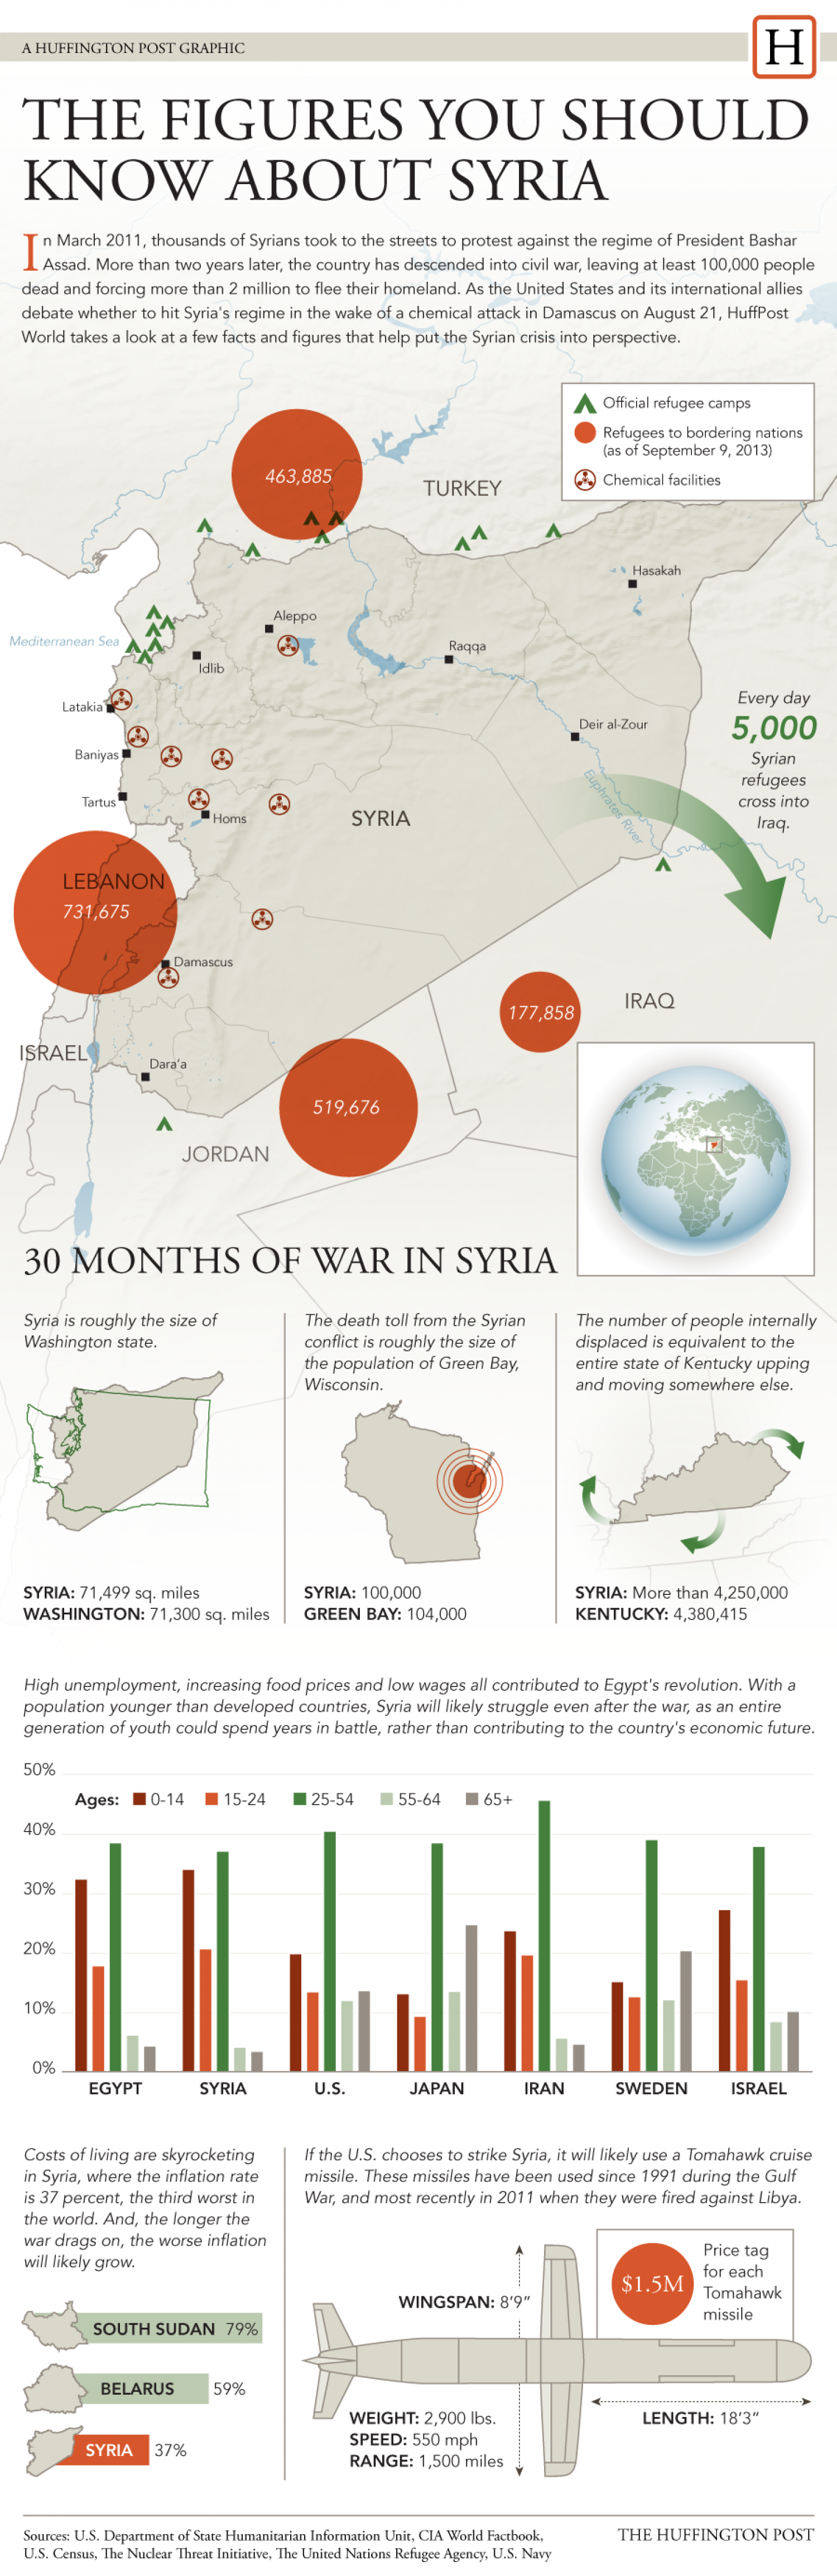 The Figures You Should Know About Syria Infographic